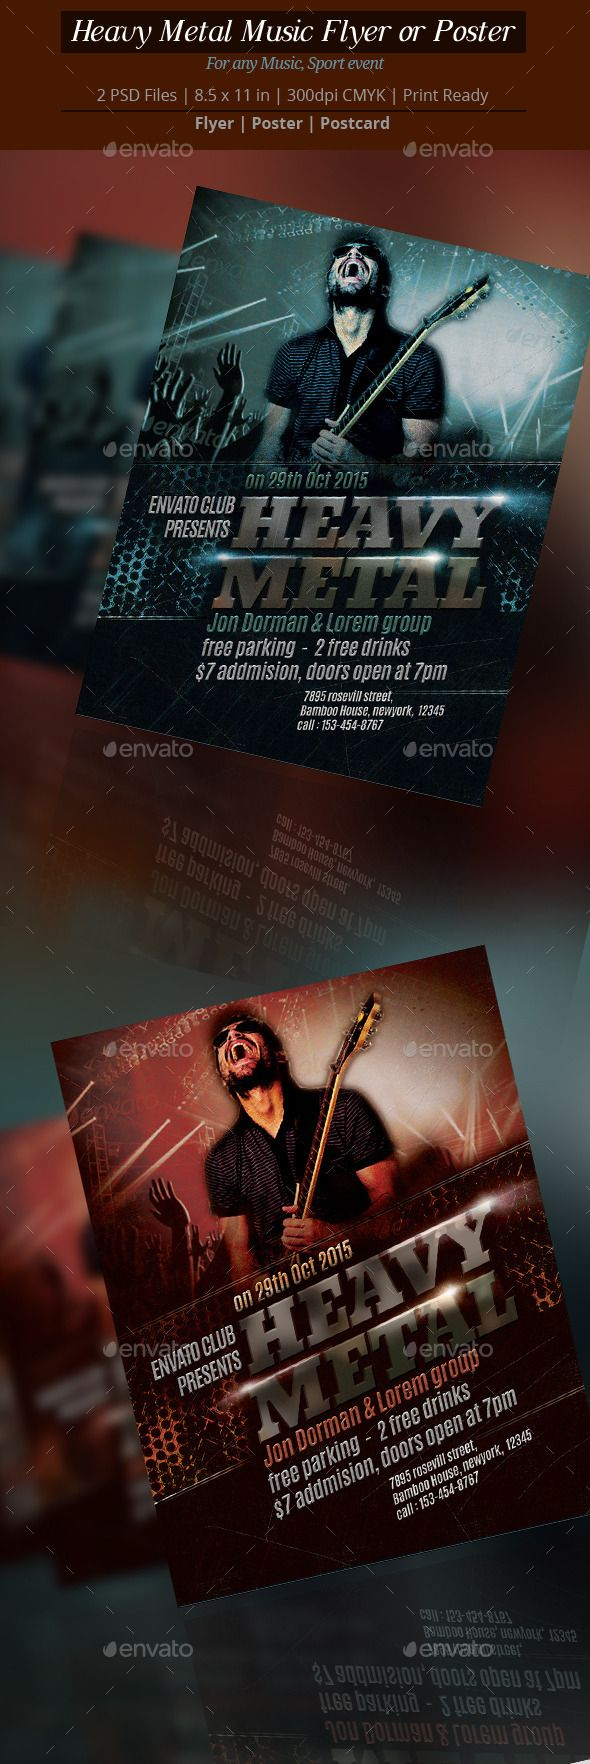 Poster design for technical events - Heavy Metal Music Flyer Or Poster